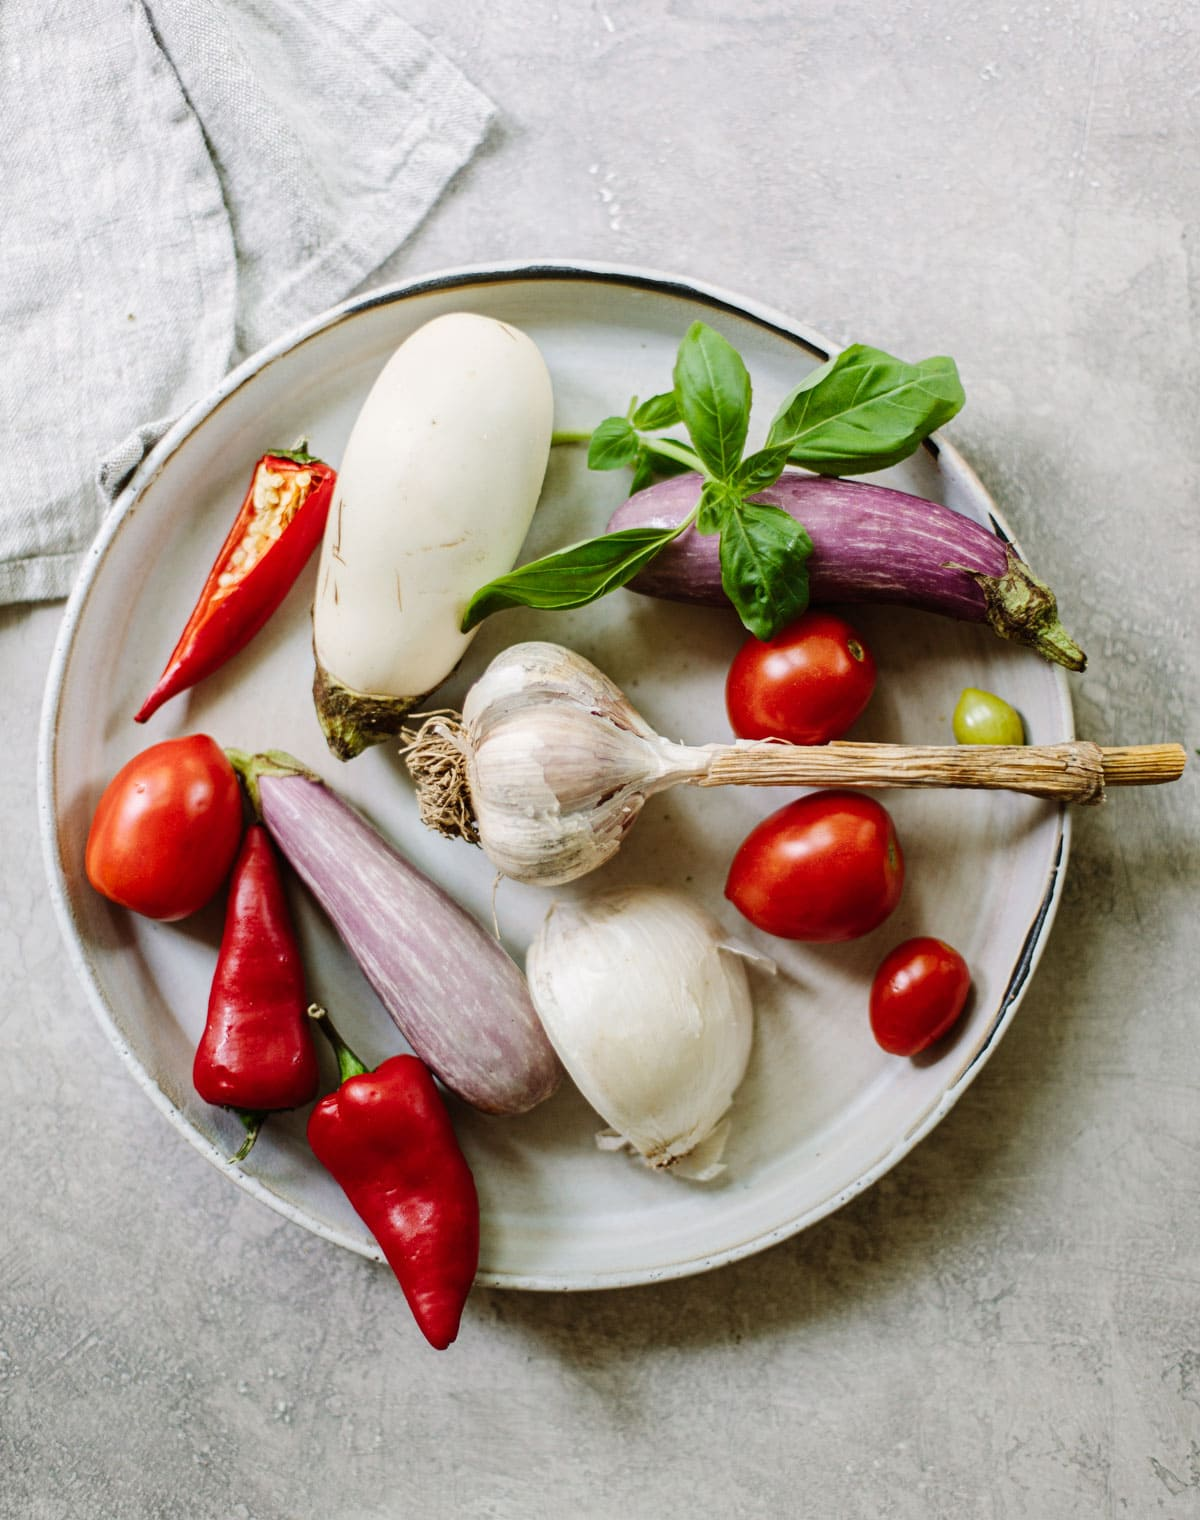 Ingredients for making Pasta alla Nonna sauce.